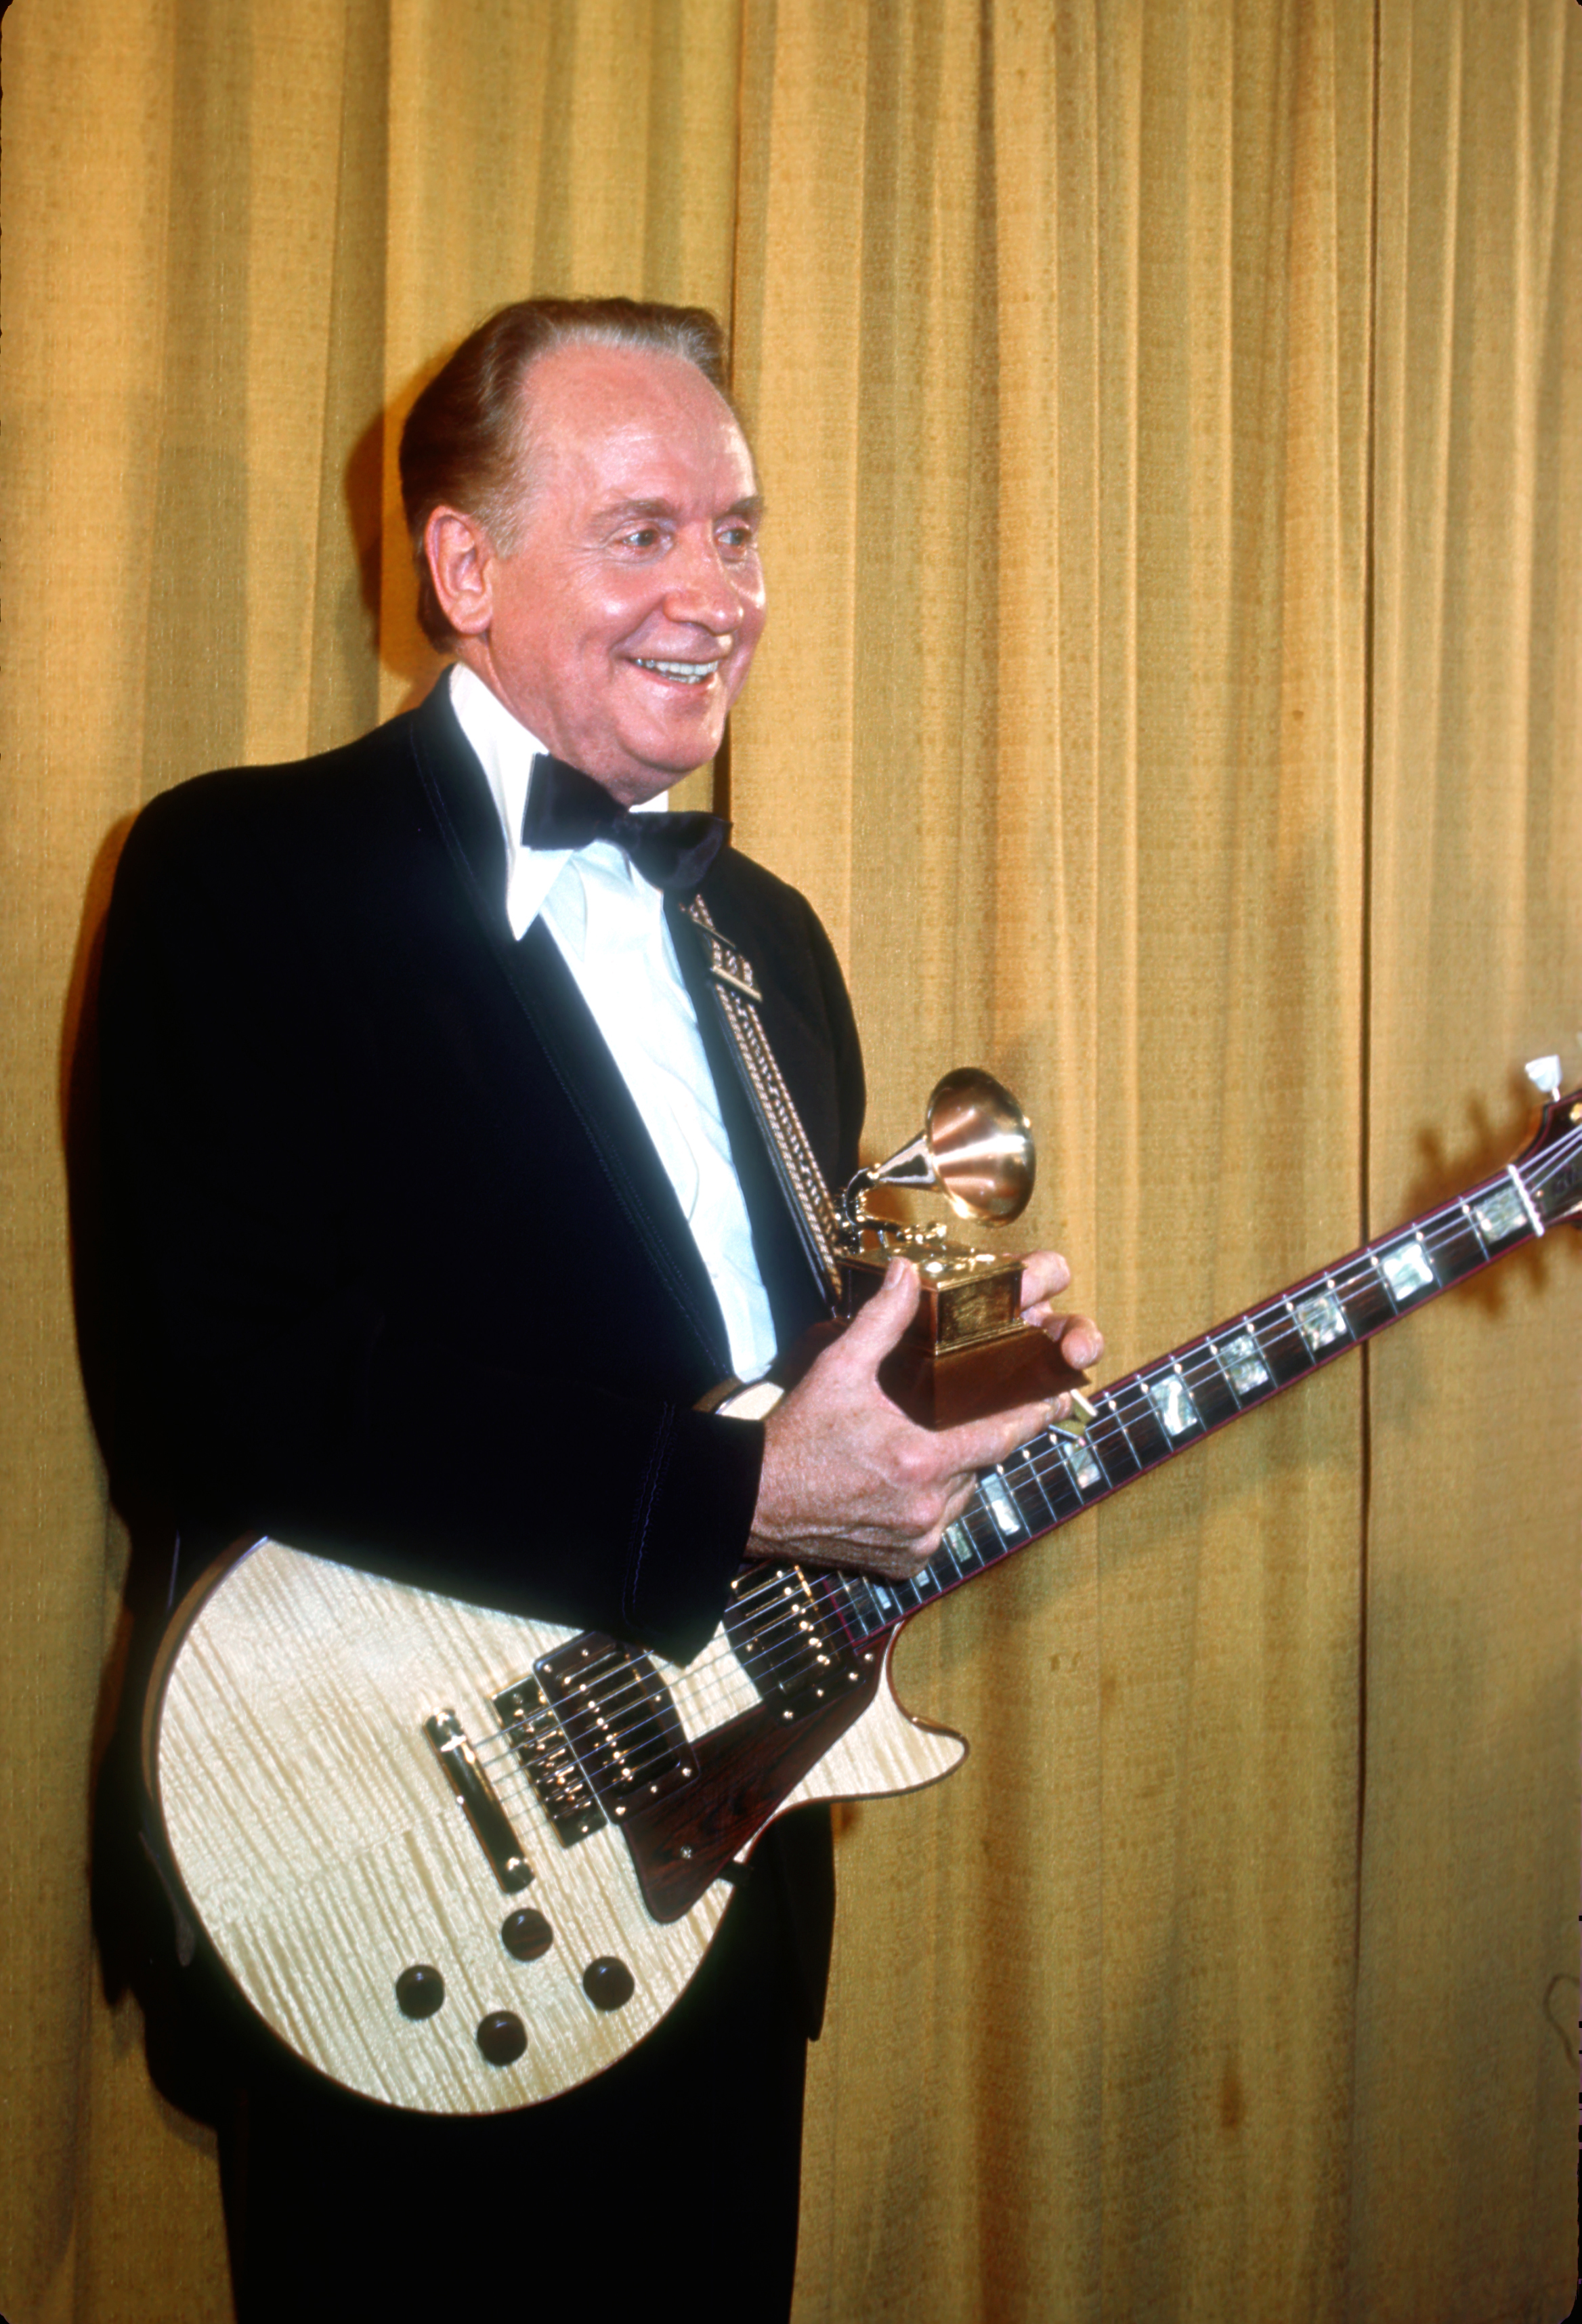 Paul was inducted in to the Grammy Hall of Fame in 1978 and the Rock and Roll Hall of Fame in 1988. He won two more Grammys in 2006 for his album  Les Paul and Friends: American Made, World Played.